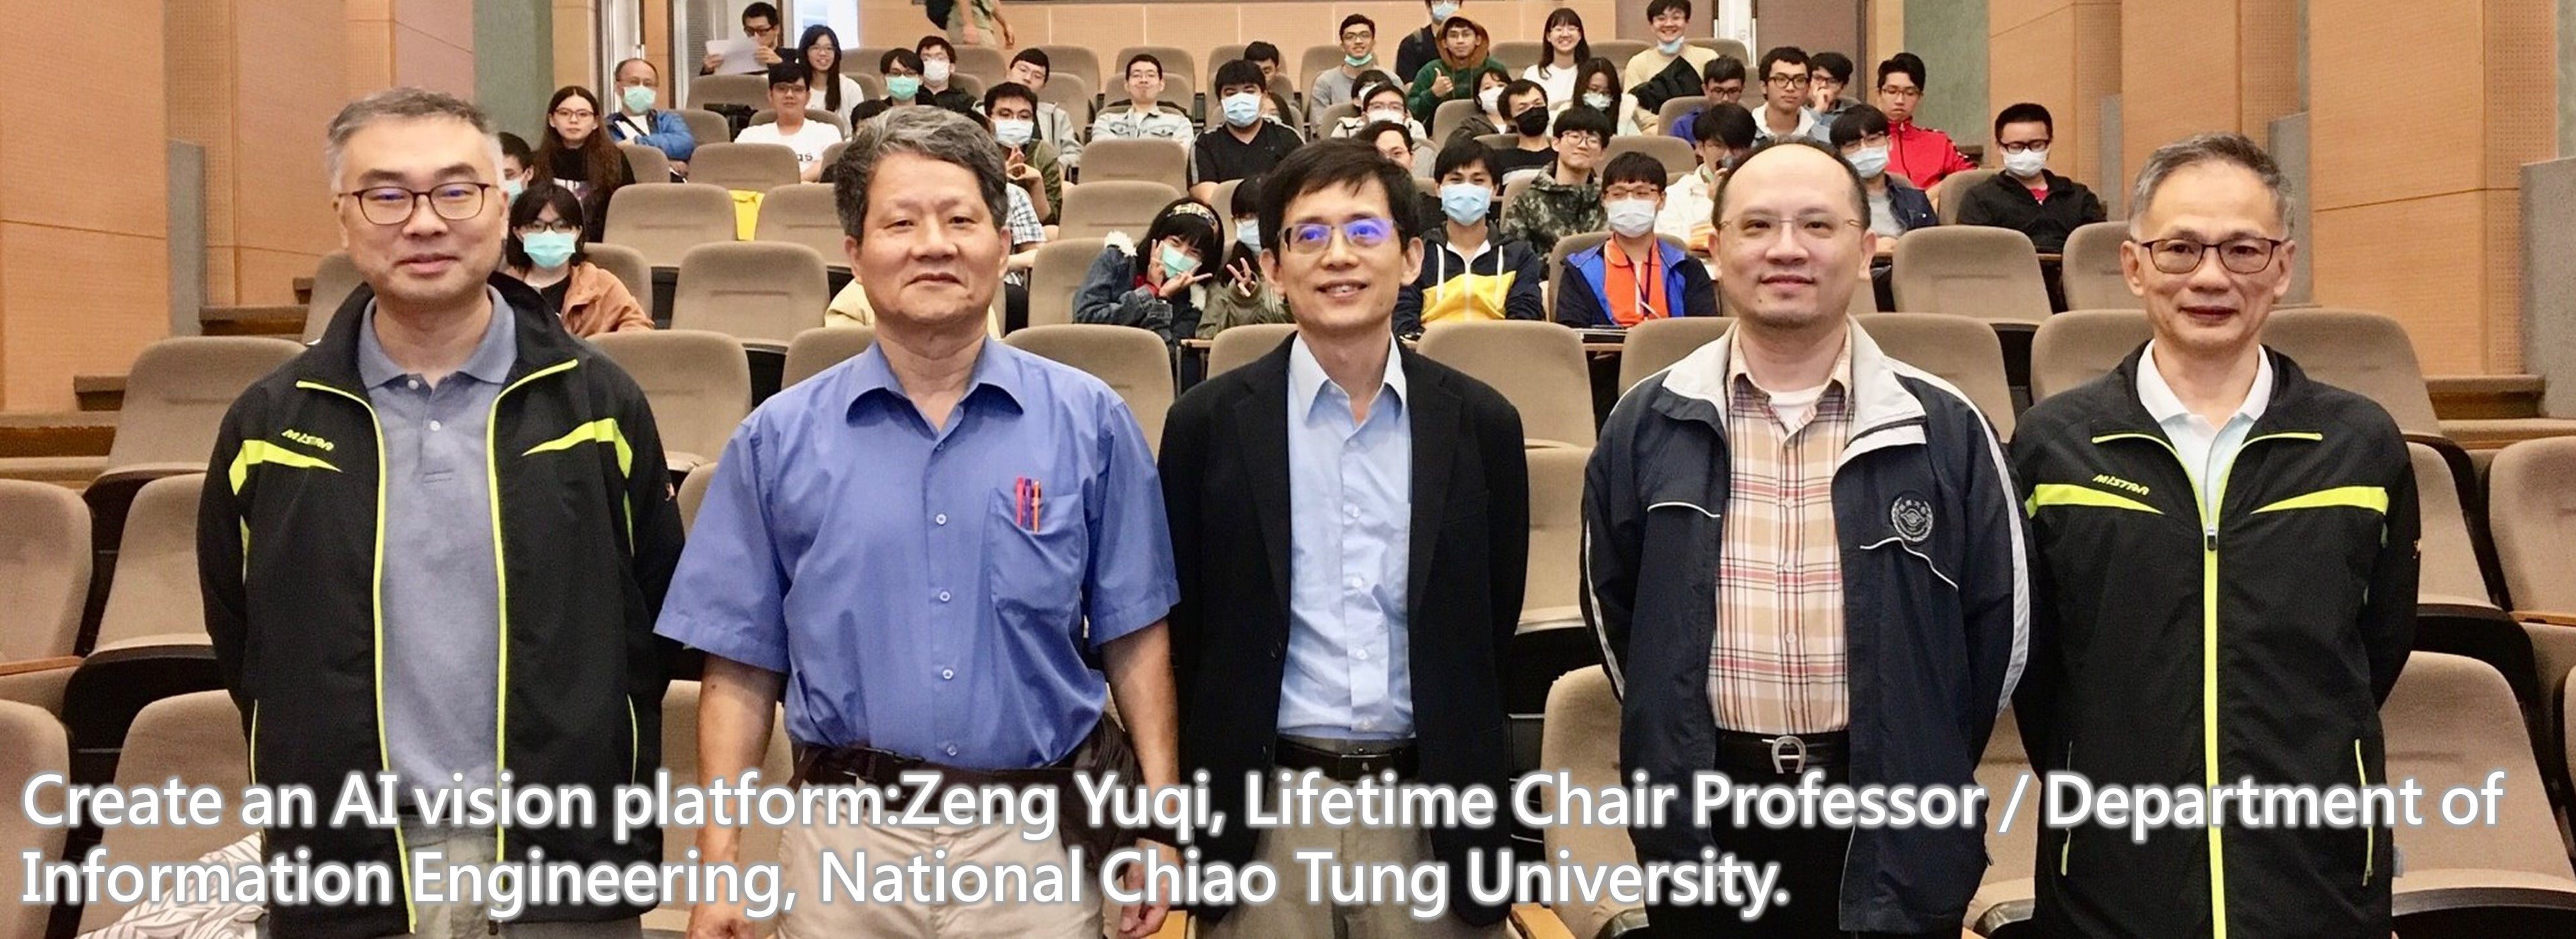 Create an AI vision platform:Zeng Yuqi, Lifetime Chair Professor / Department of Information Engineering, National Chiao Tung University.